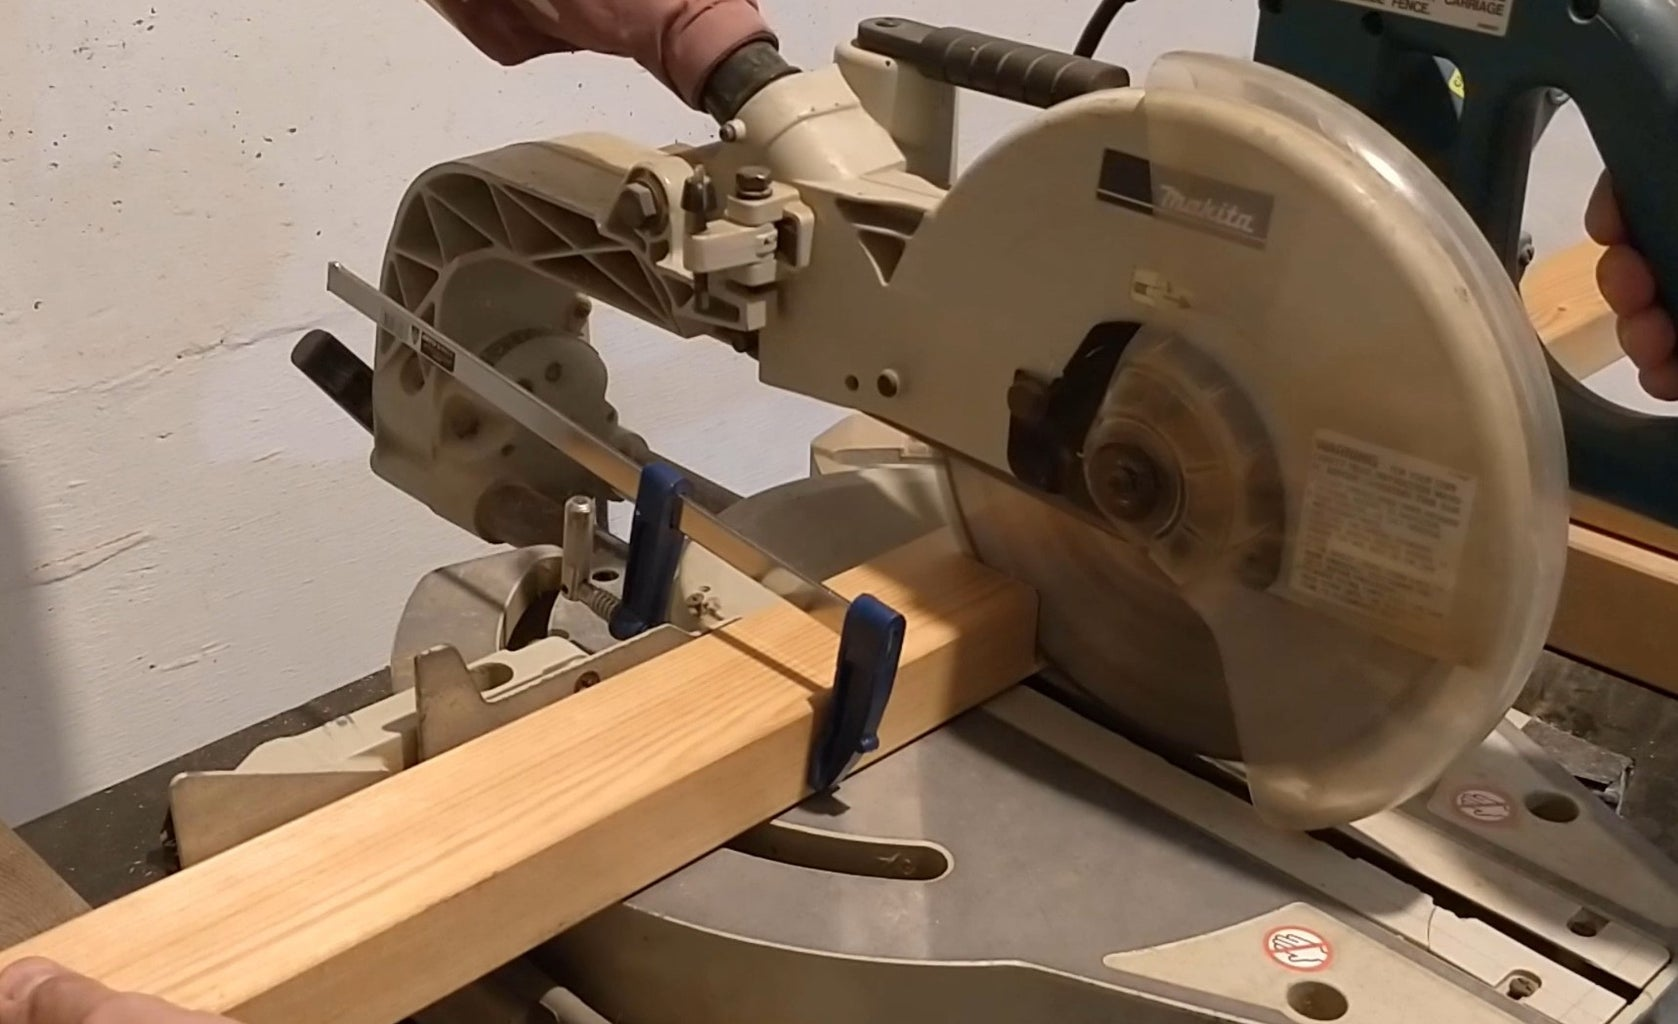 Woodworking - Crane's Base & Tower Rod - Cutting